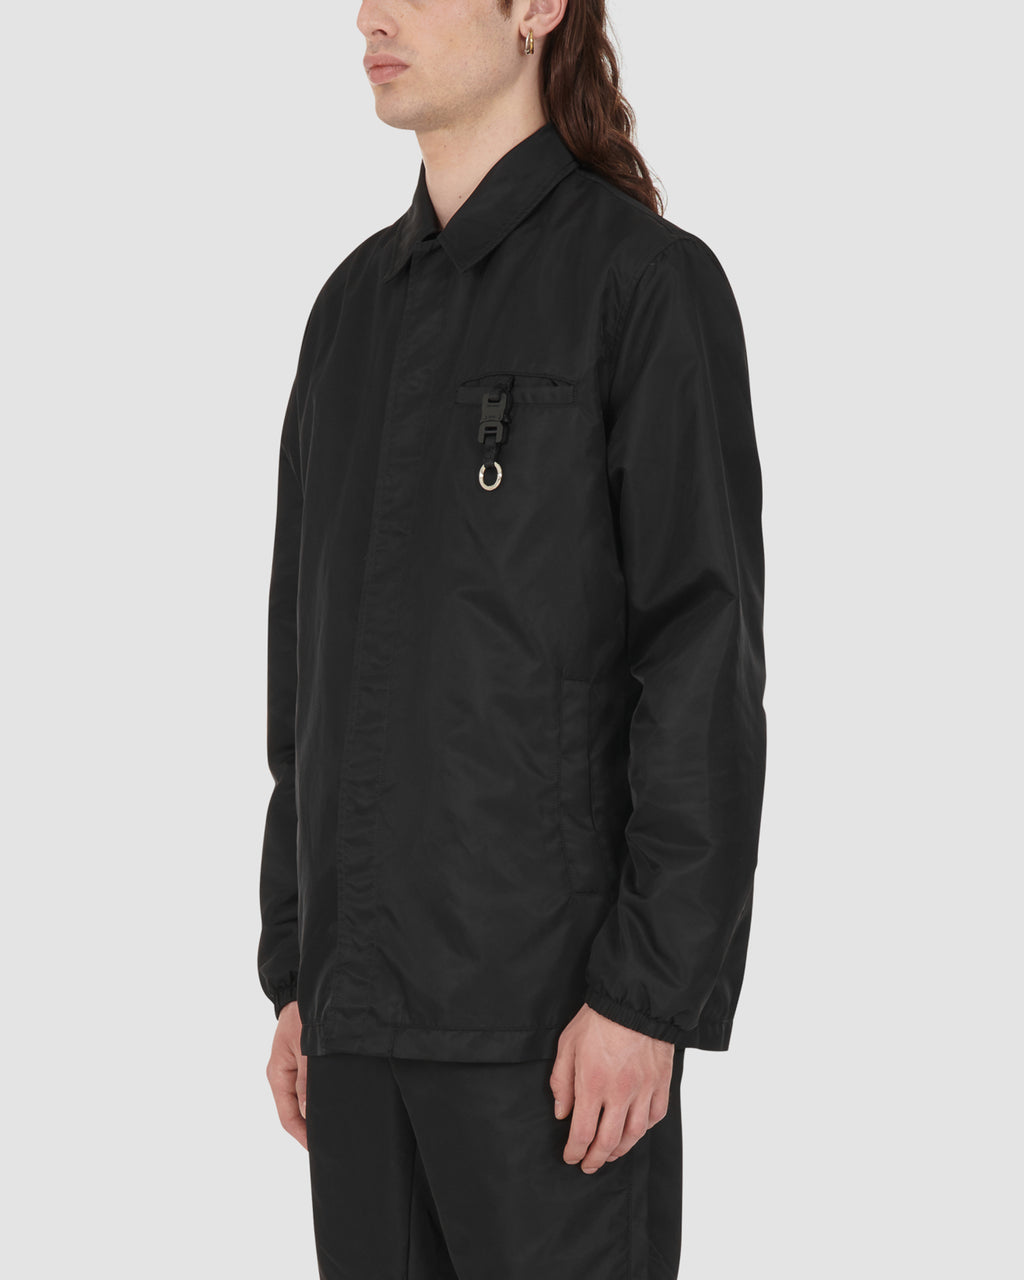 1017 ALYX 9SM | BLACK COACH JACKET | Outerwear | Black, Google Shopping, Man, MEN, Outerwear, S20, S20 Drop II